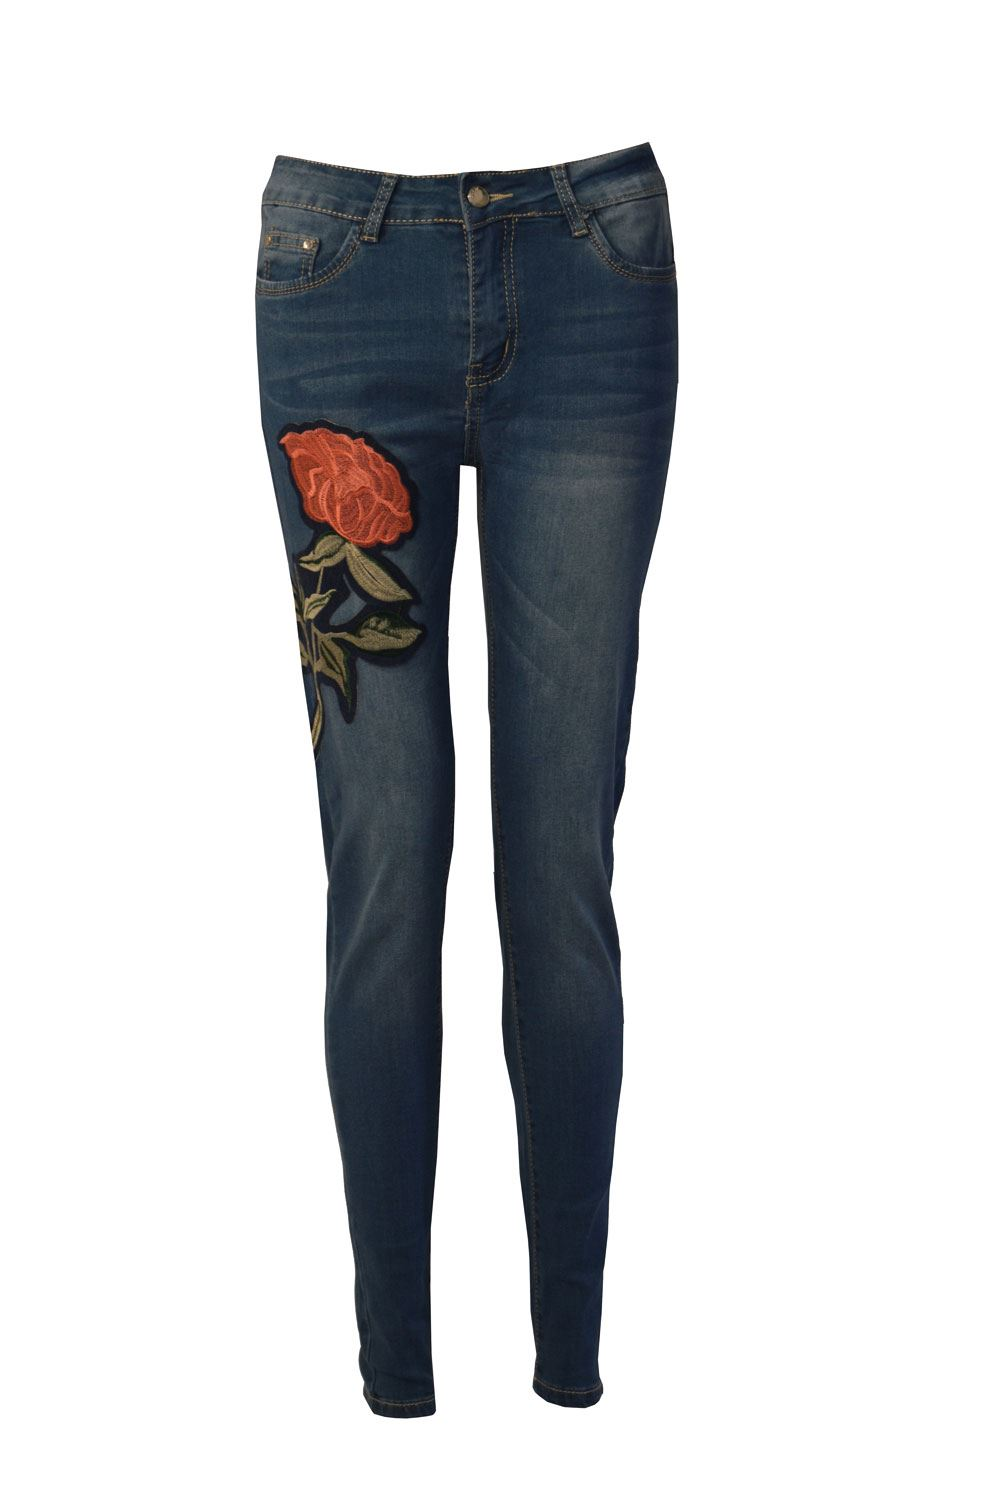 Womens Ladies Embroidered Denim High Waisted Skinny Fit Stretch Jeans | EBay